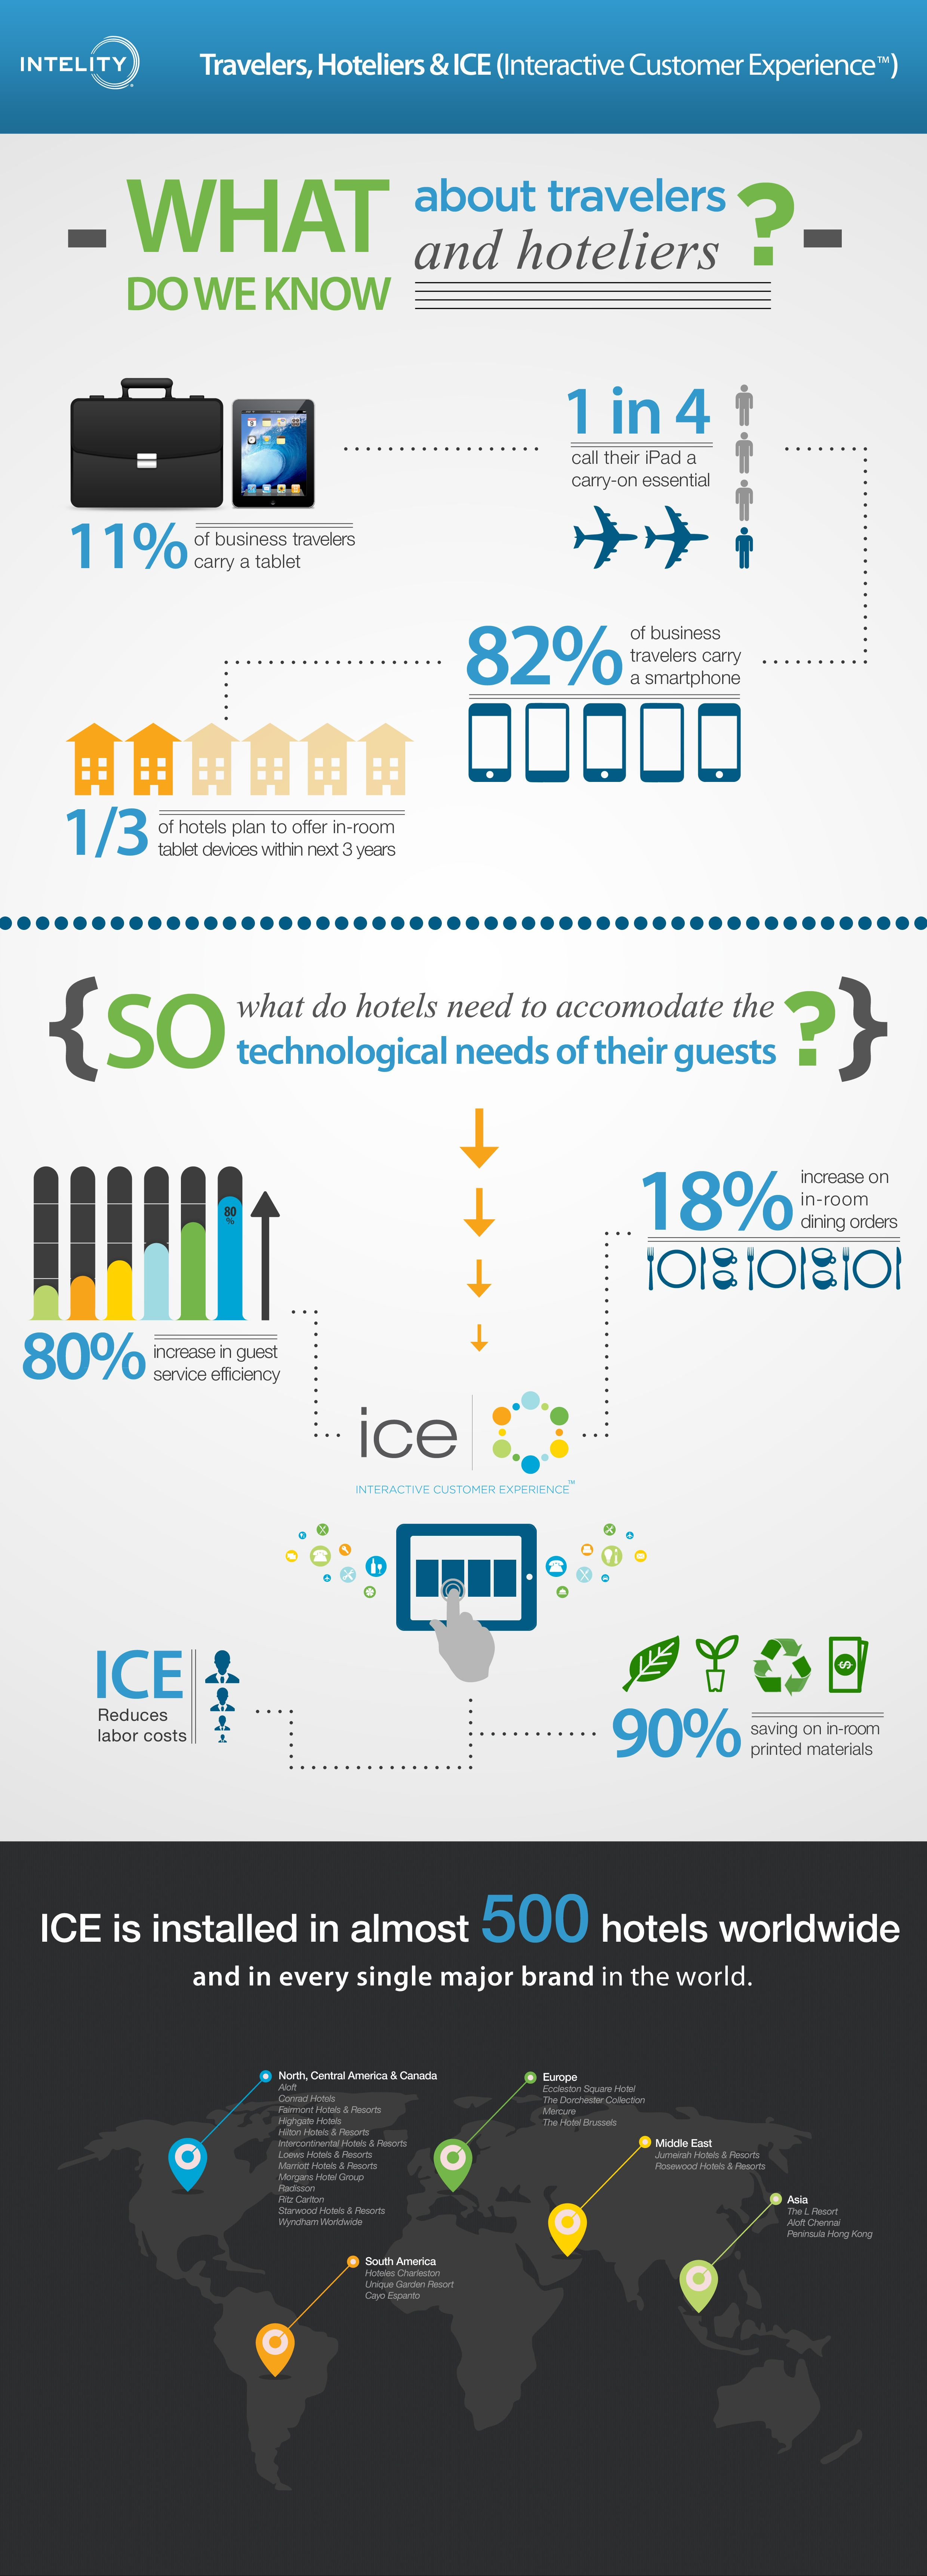 A Look at Travelers, Hoteliers and Technology (#Infographic by @Intelity)